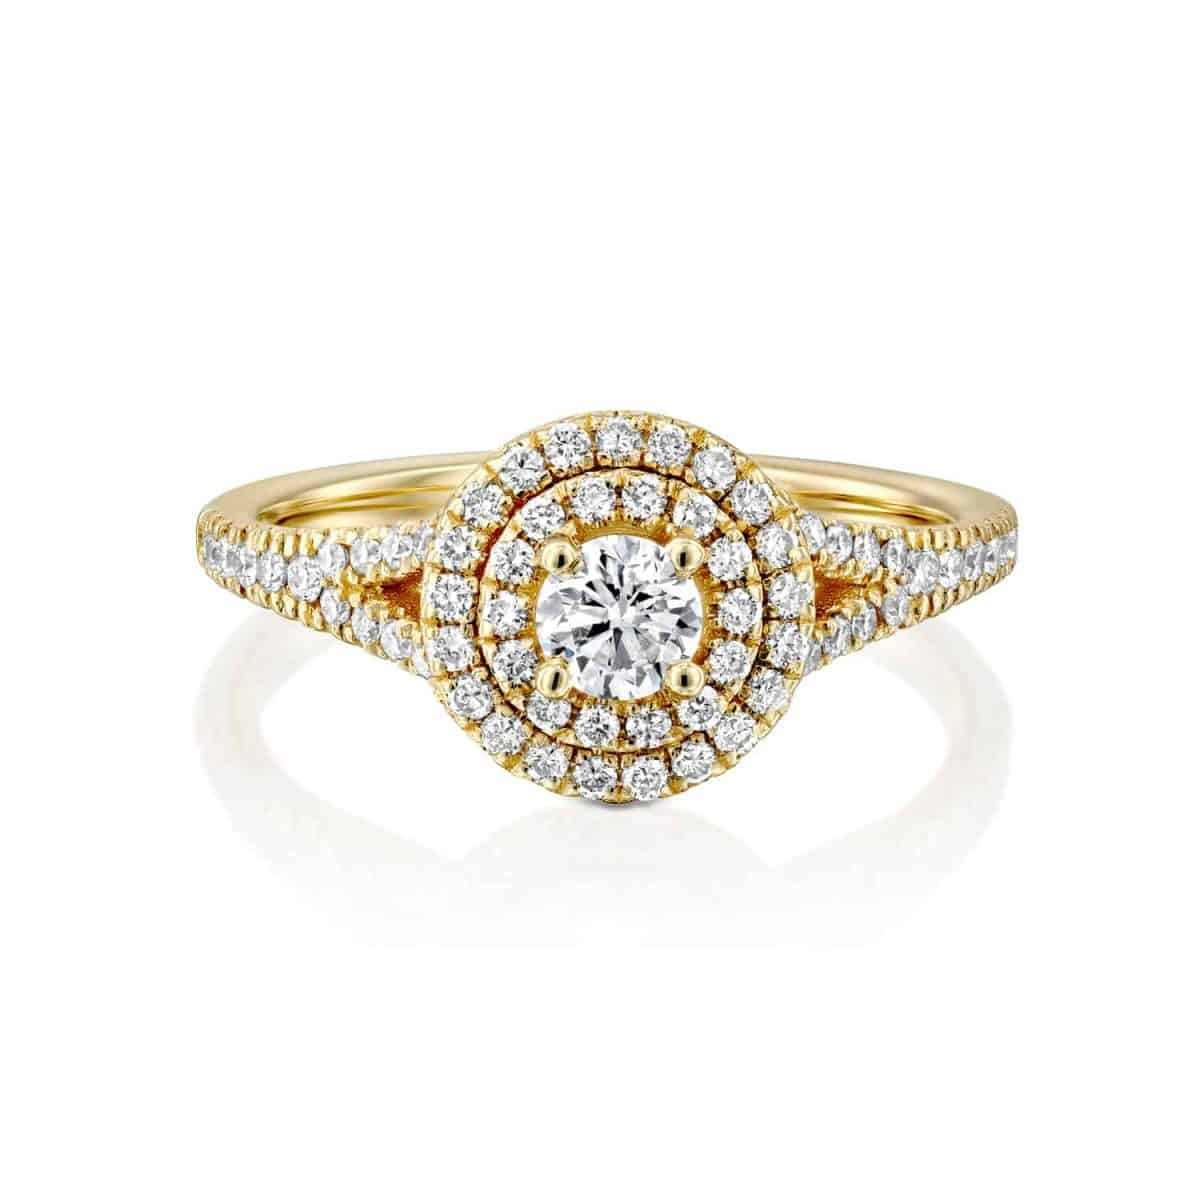 Halo - Yellow Gold Lab Grown Diamond Engagement Ring 0.75ct. - laying